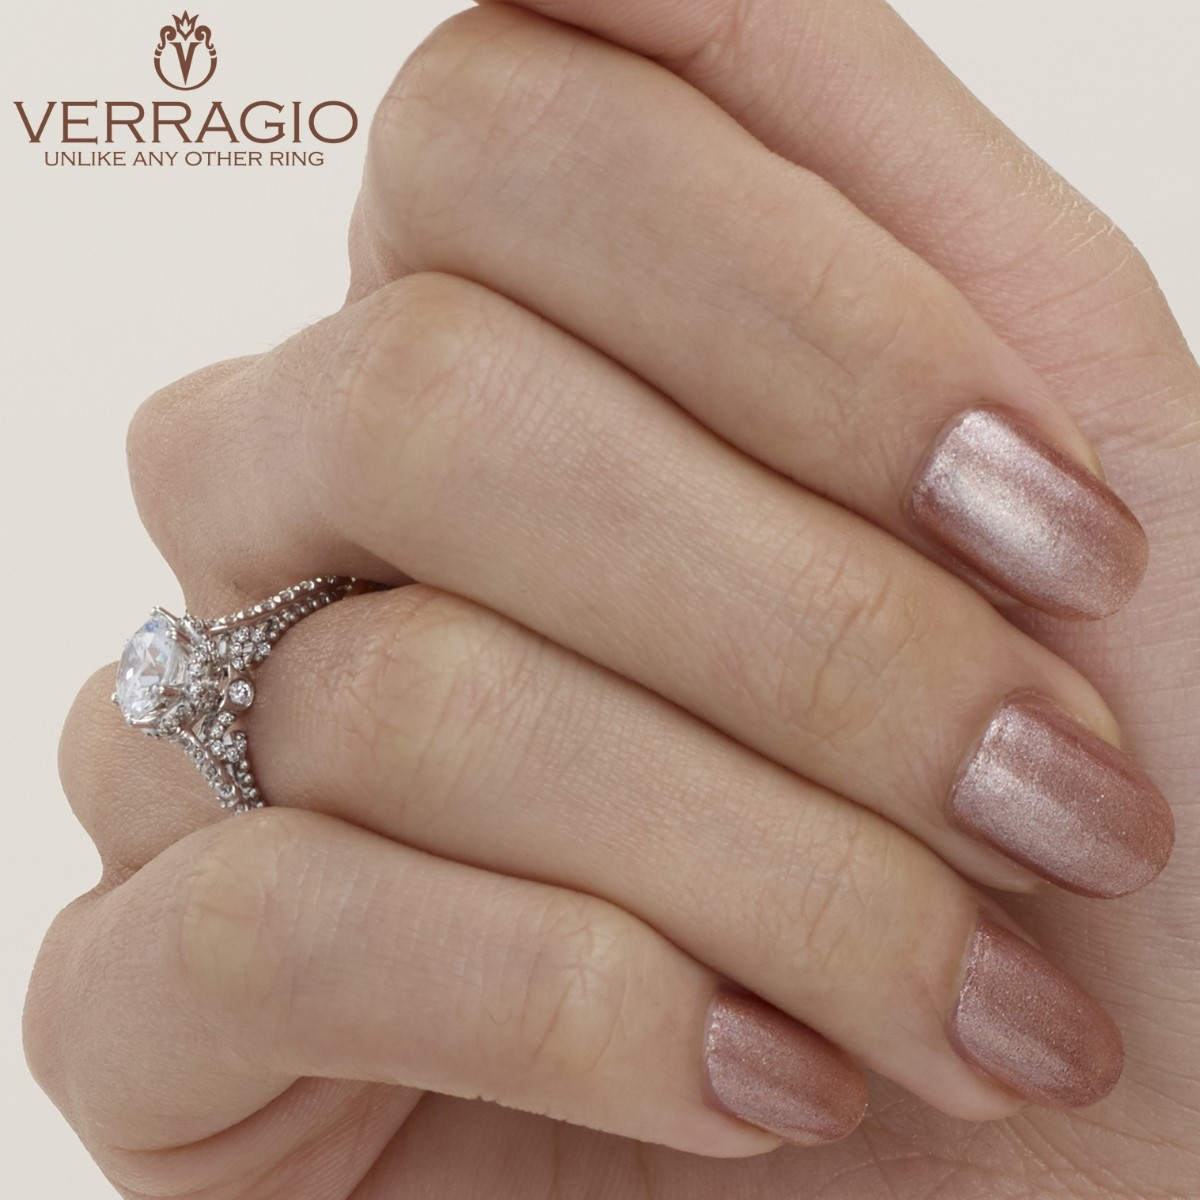 Verragio Parisian-144R 14 Karat Engagement Ring Alternative View 3